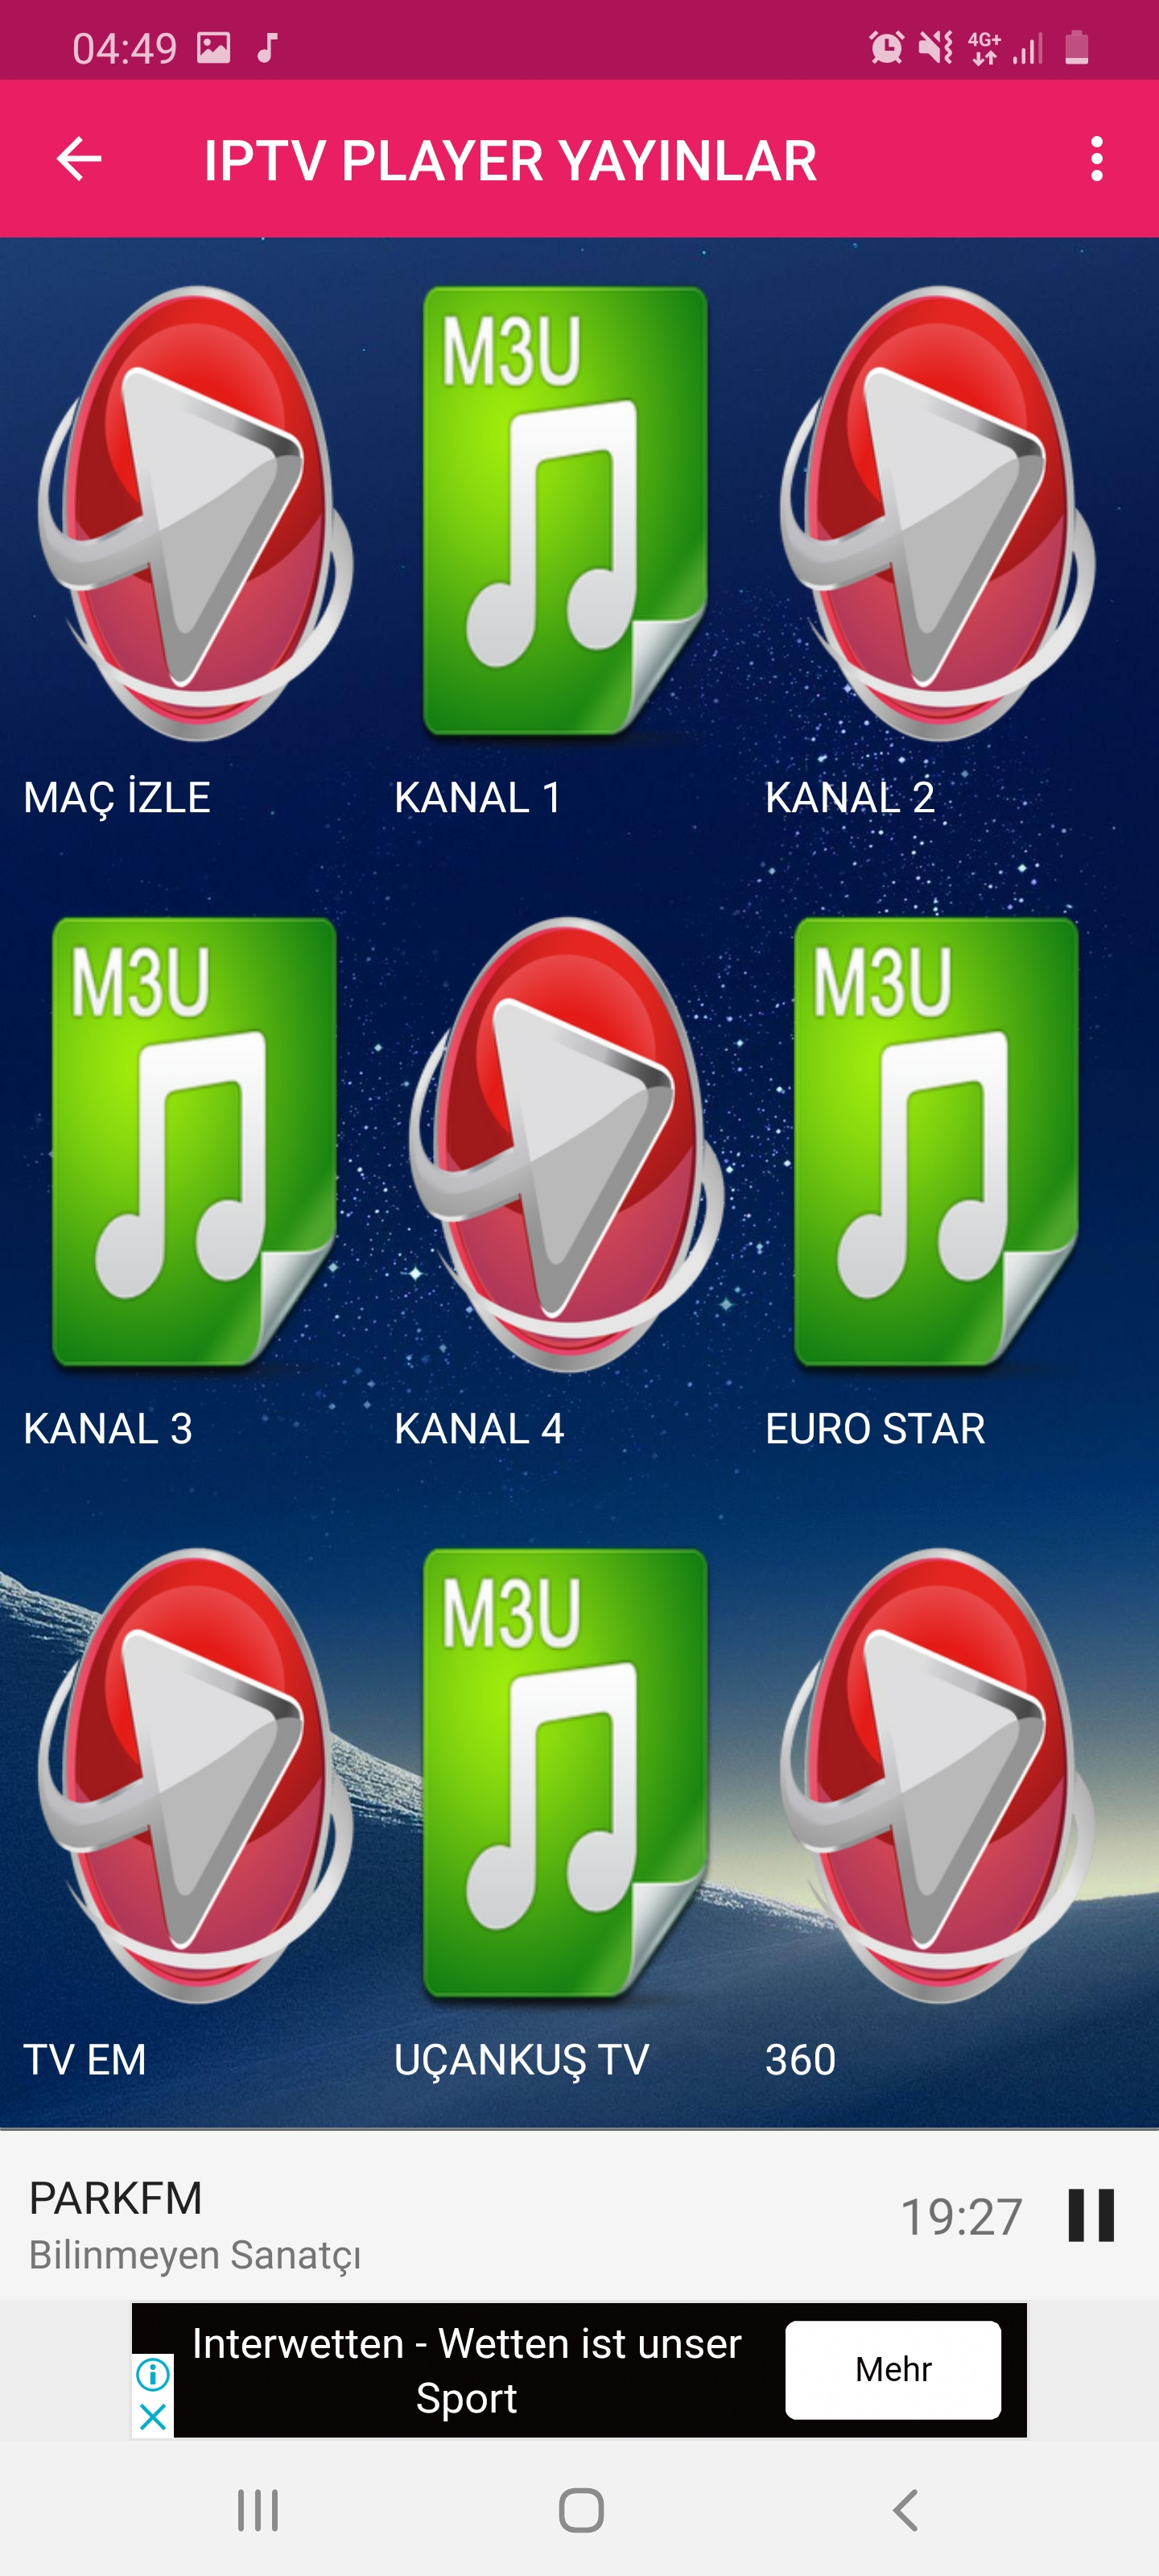 IPTV Player Android App - Download IPTV Player